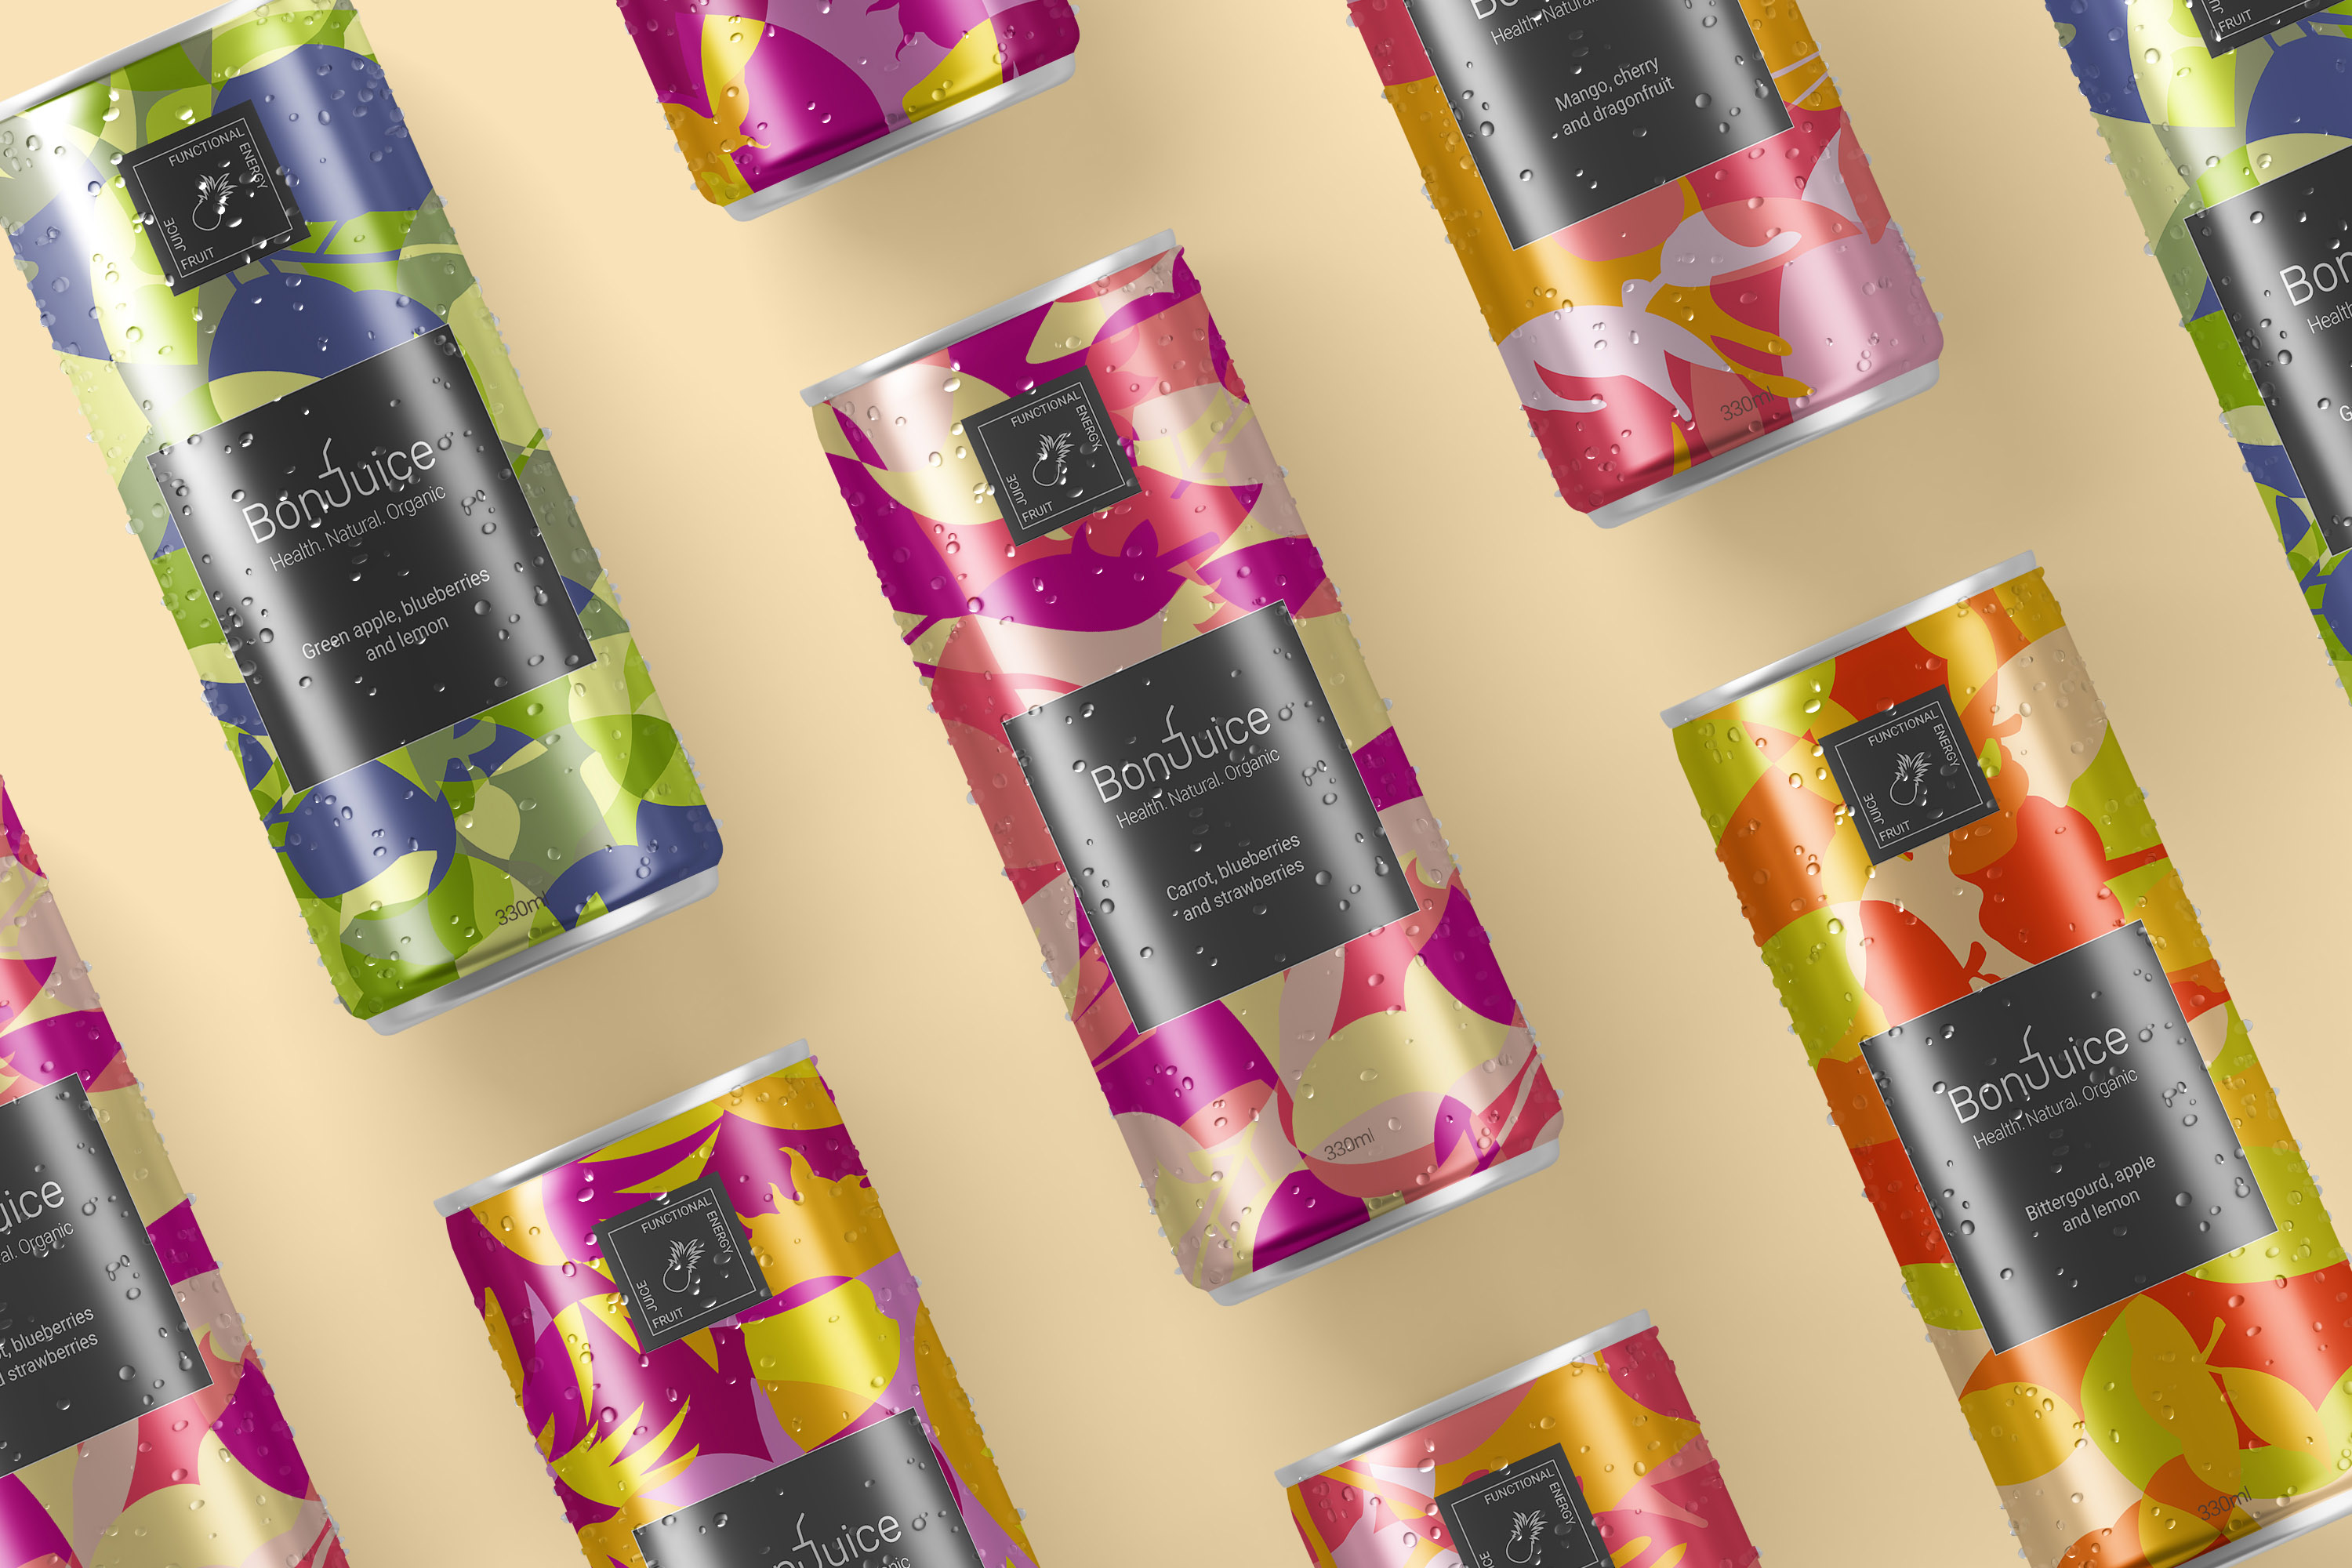 New Branding, Packaging and Website Design for the Brand Bonjuice